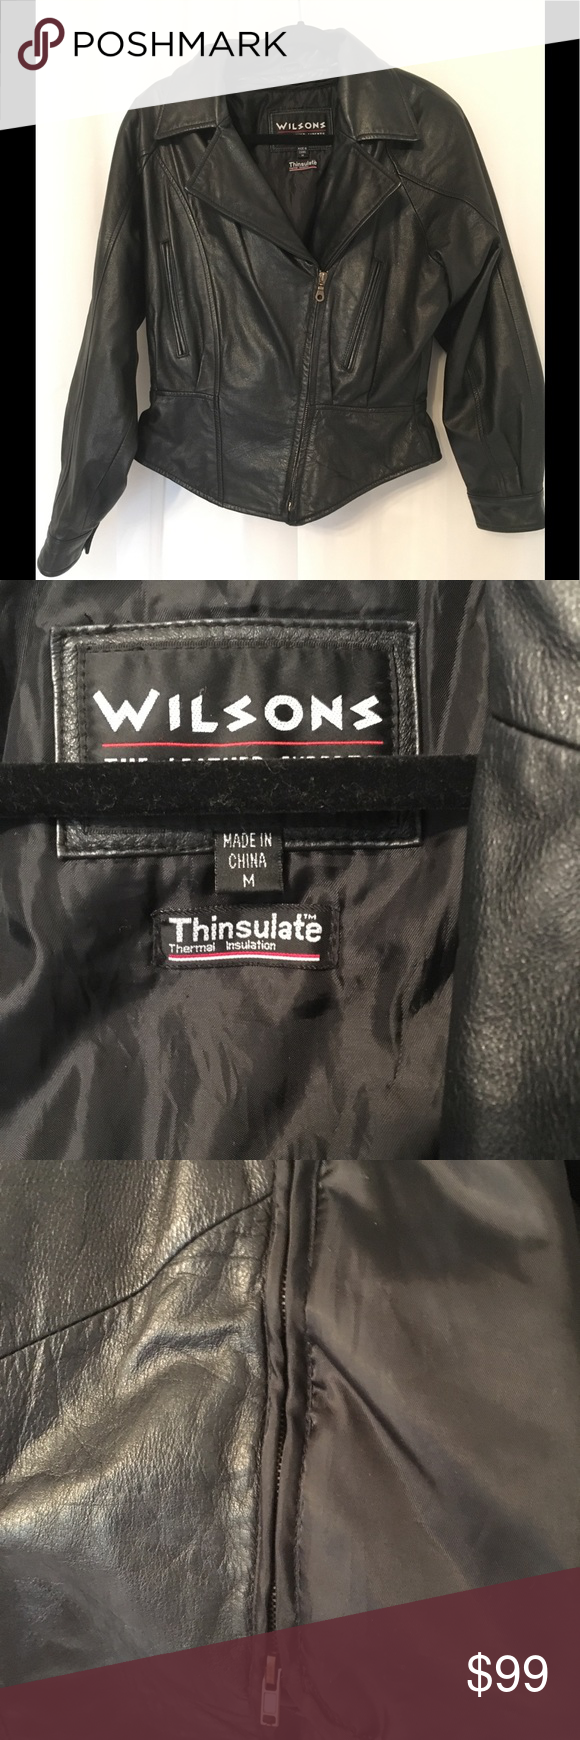 Wilson's Motorcycle Thinsulate Leather Jacket Leather